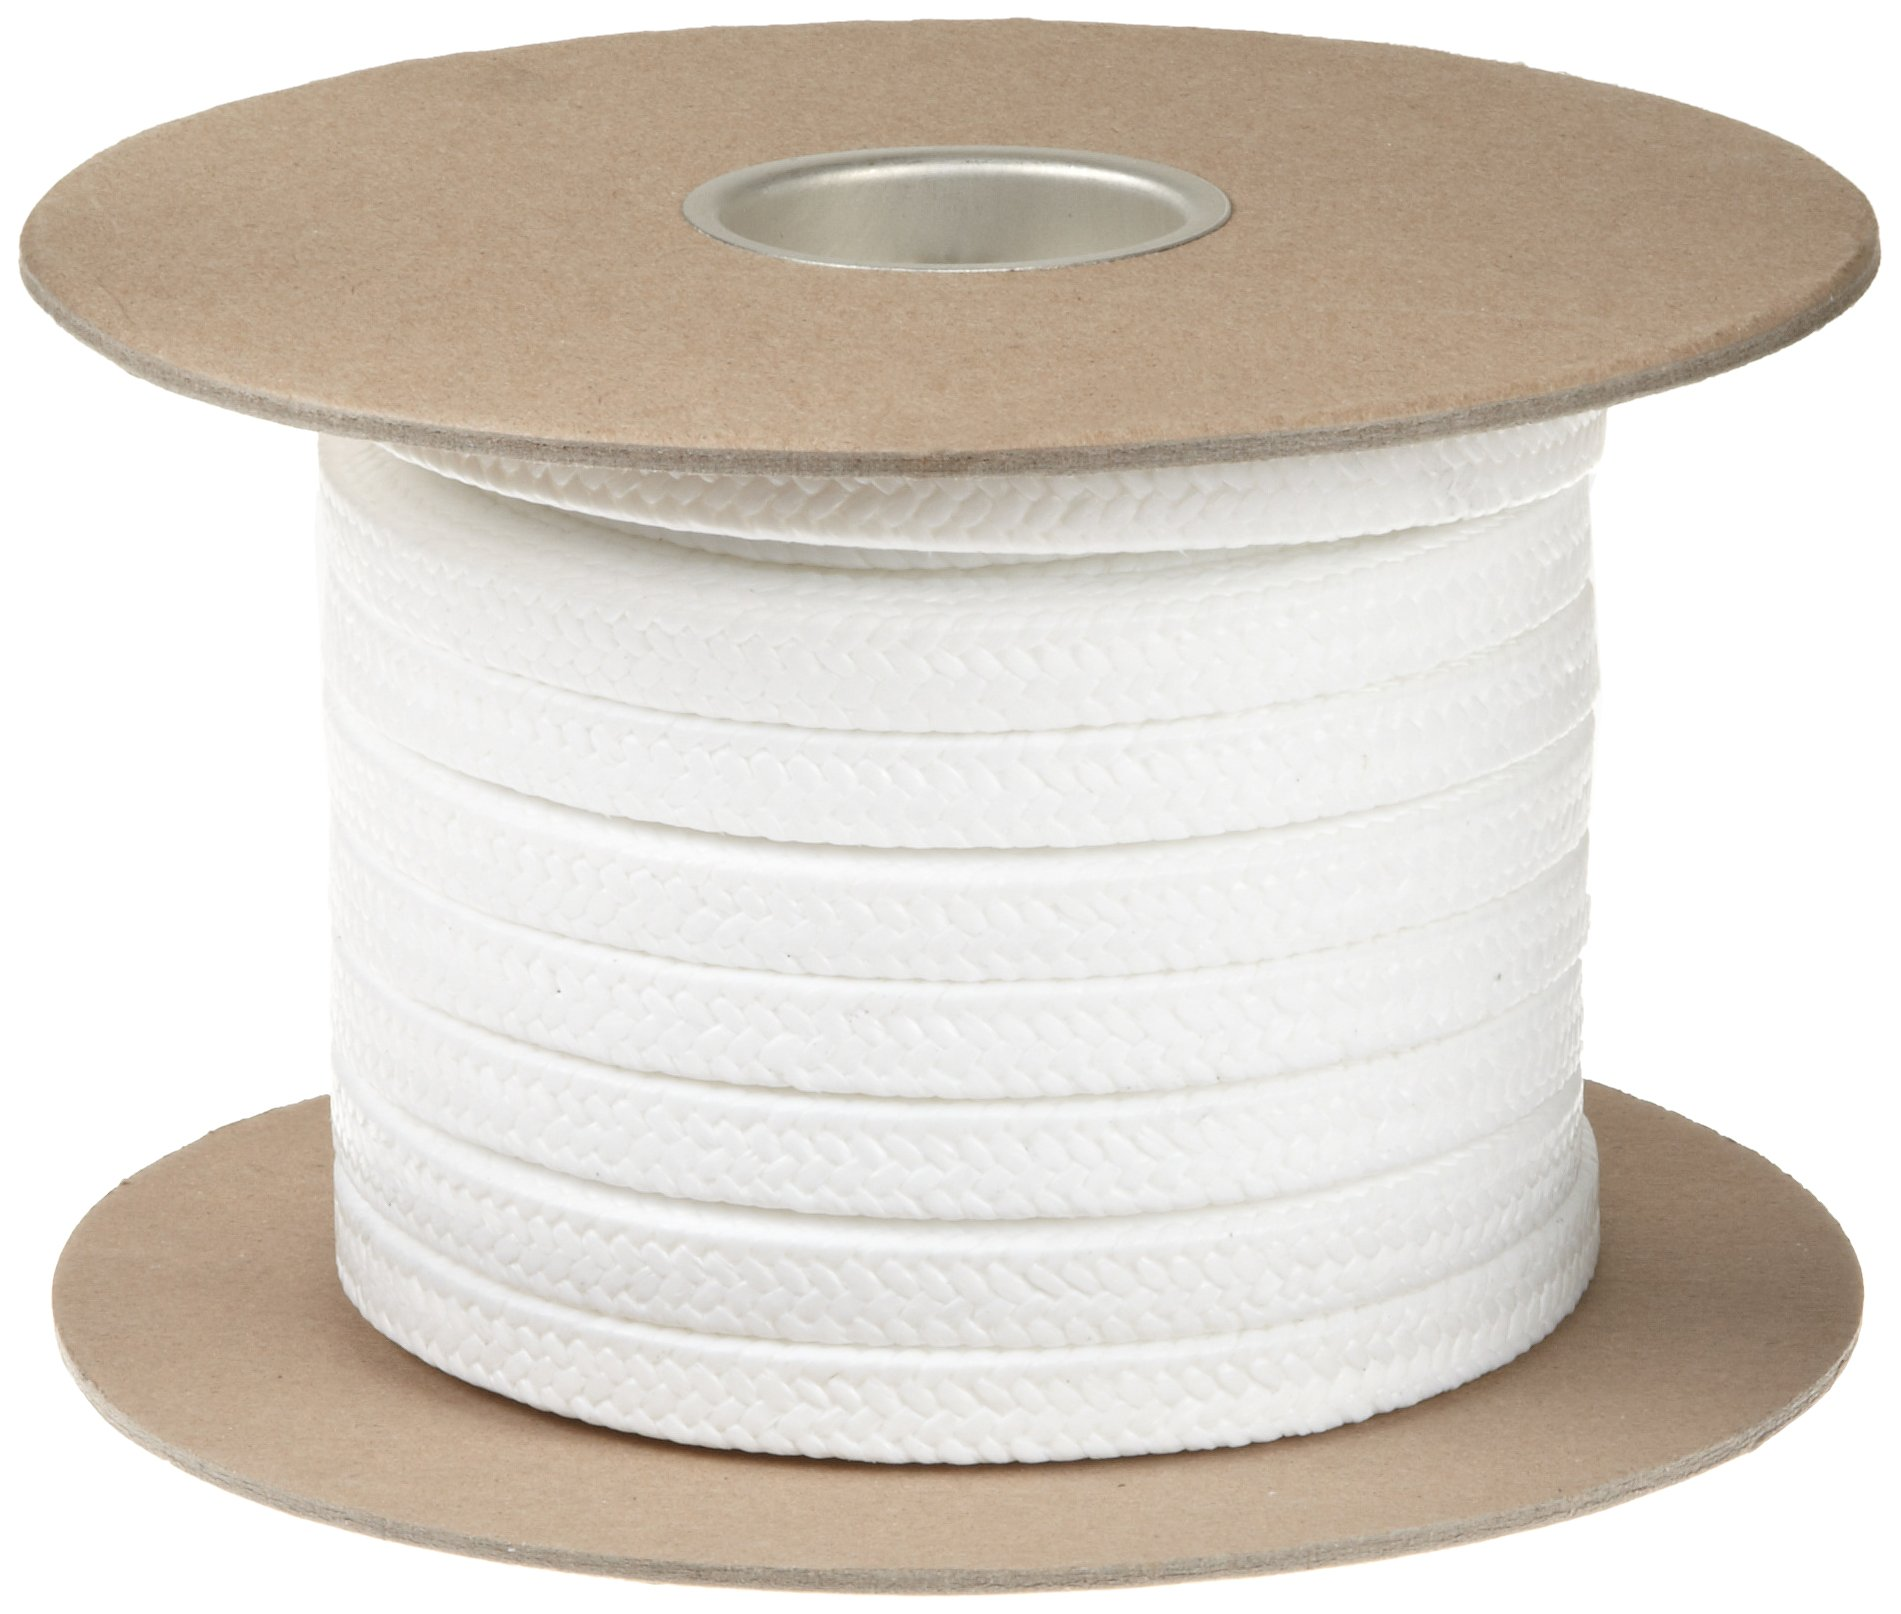 Palmetto 1367FS Series FDA Compliant PTFE Compression Packing Seal, White, 3/4'' Square, 25' Length